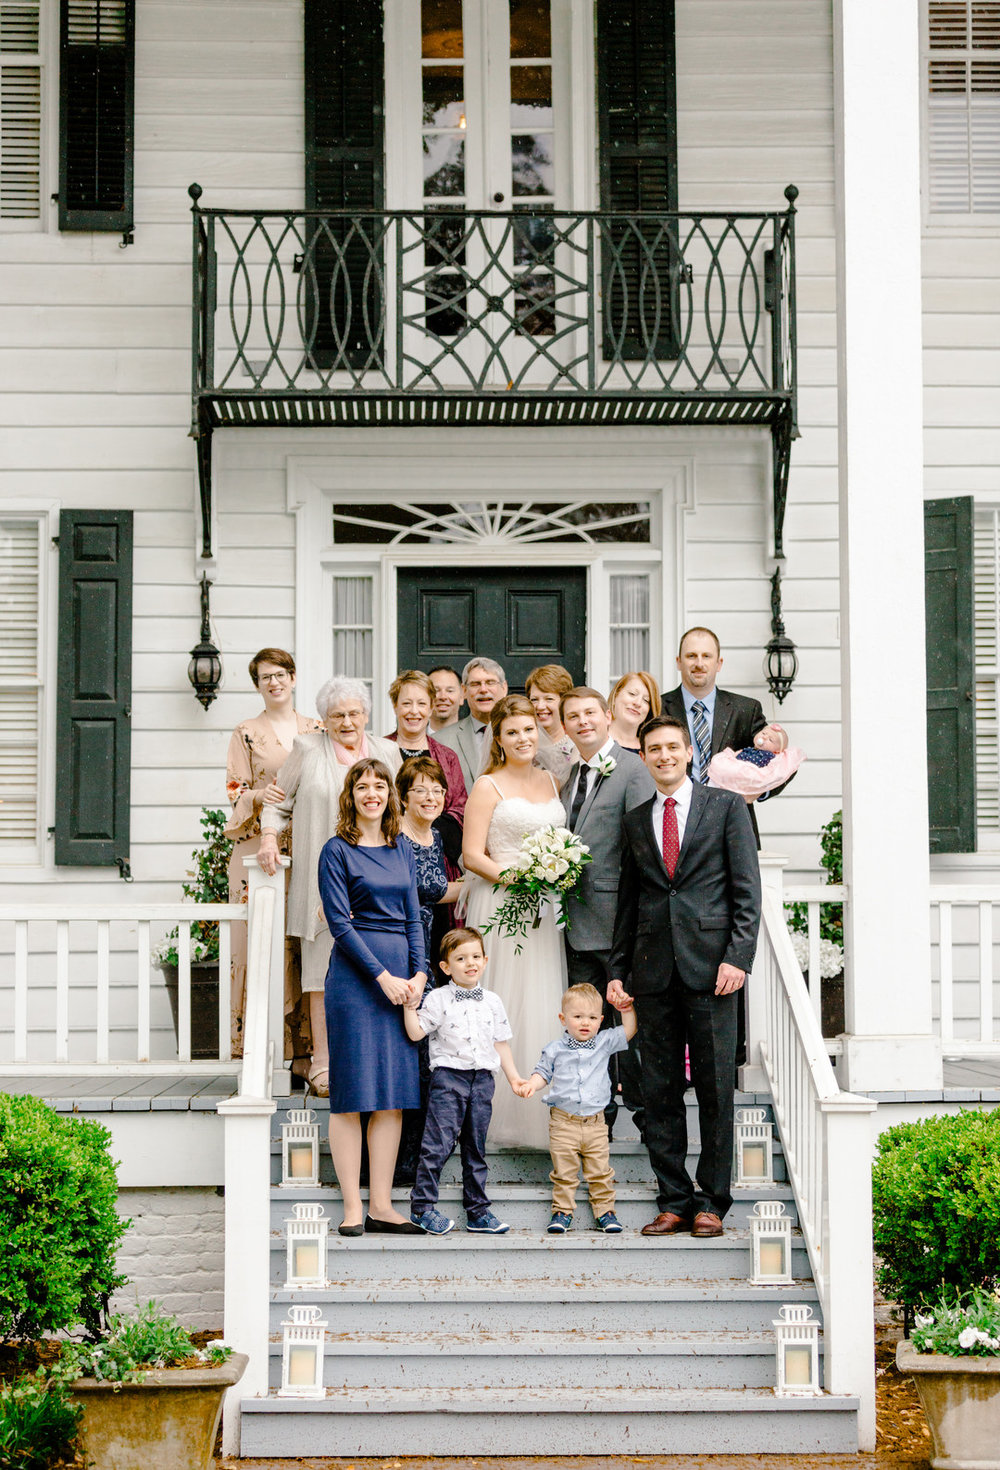 kaminski-house-wedding-23.jpg